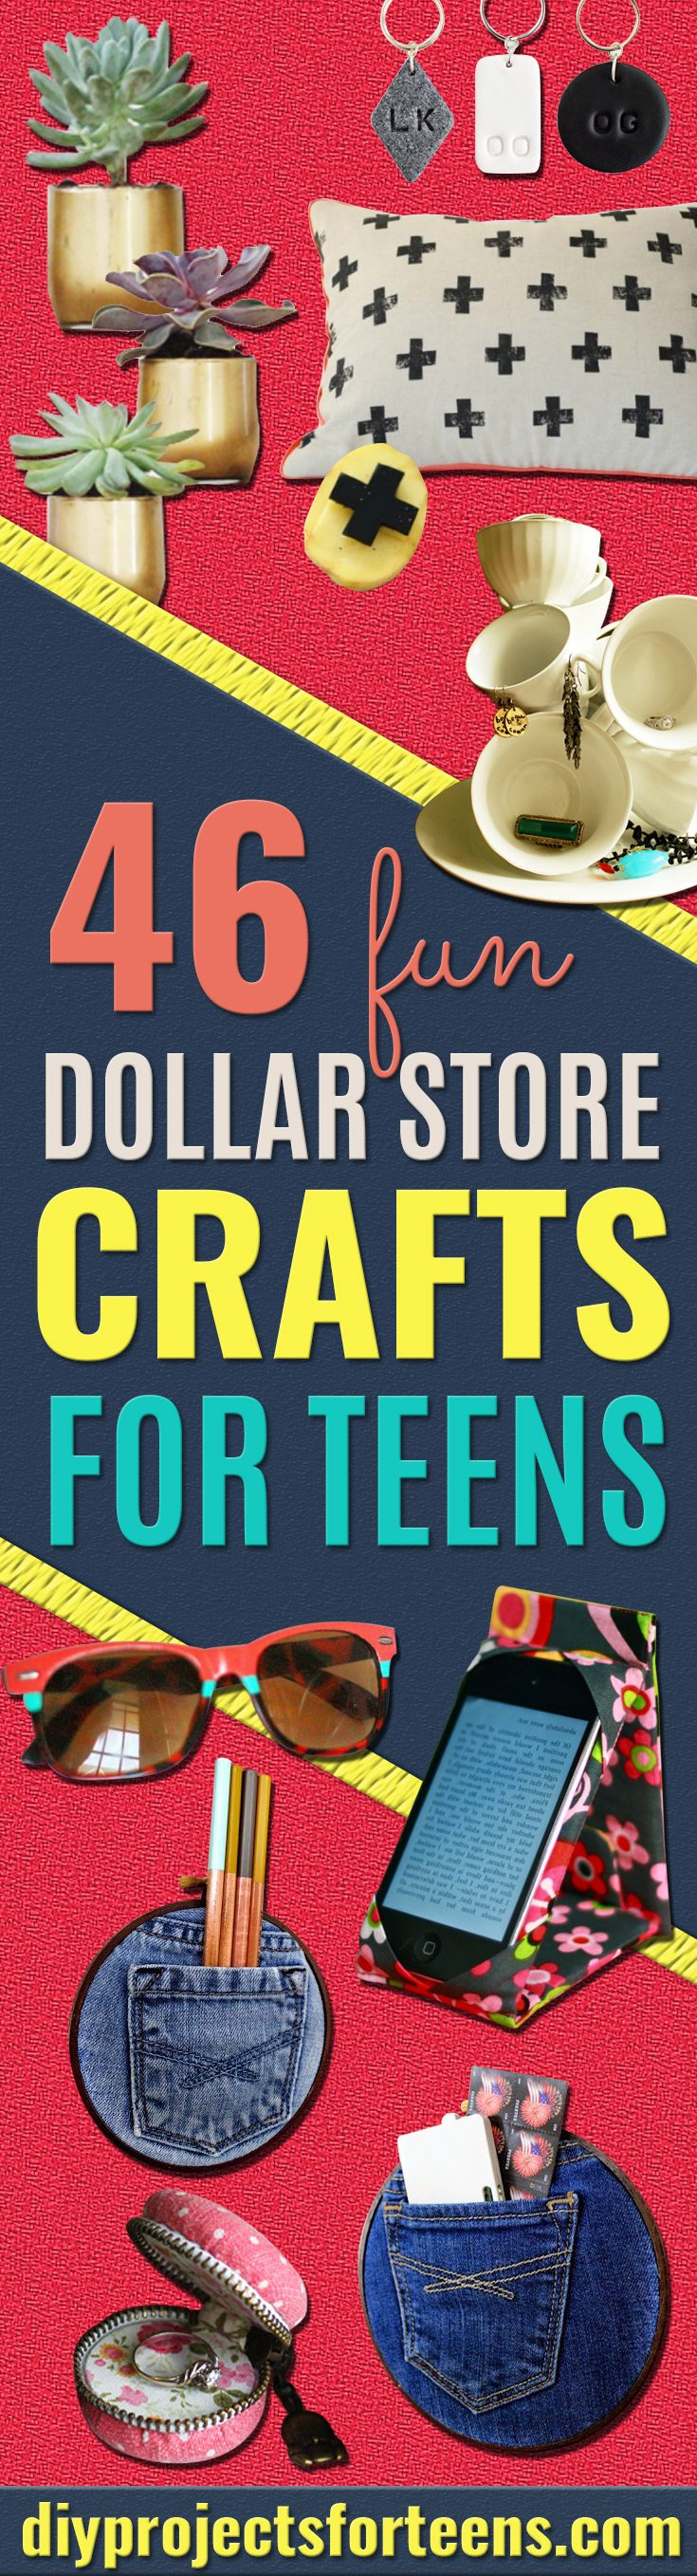 Fun Dollar Store Crafts for Teens